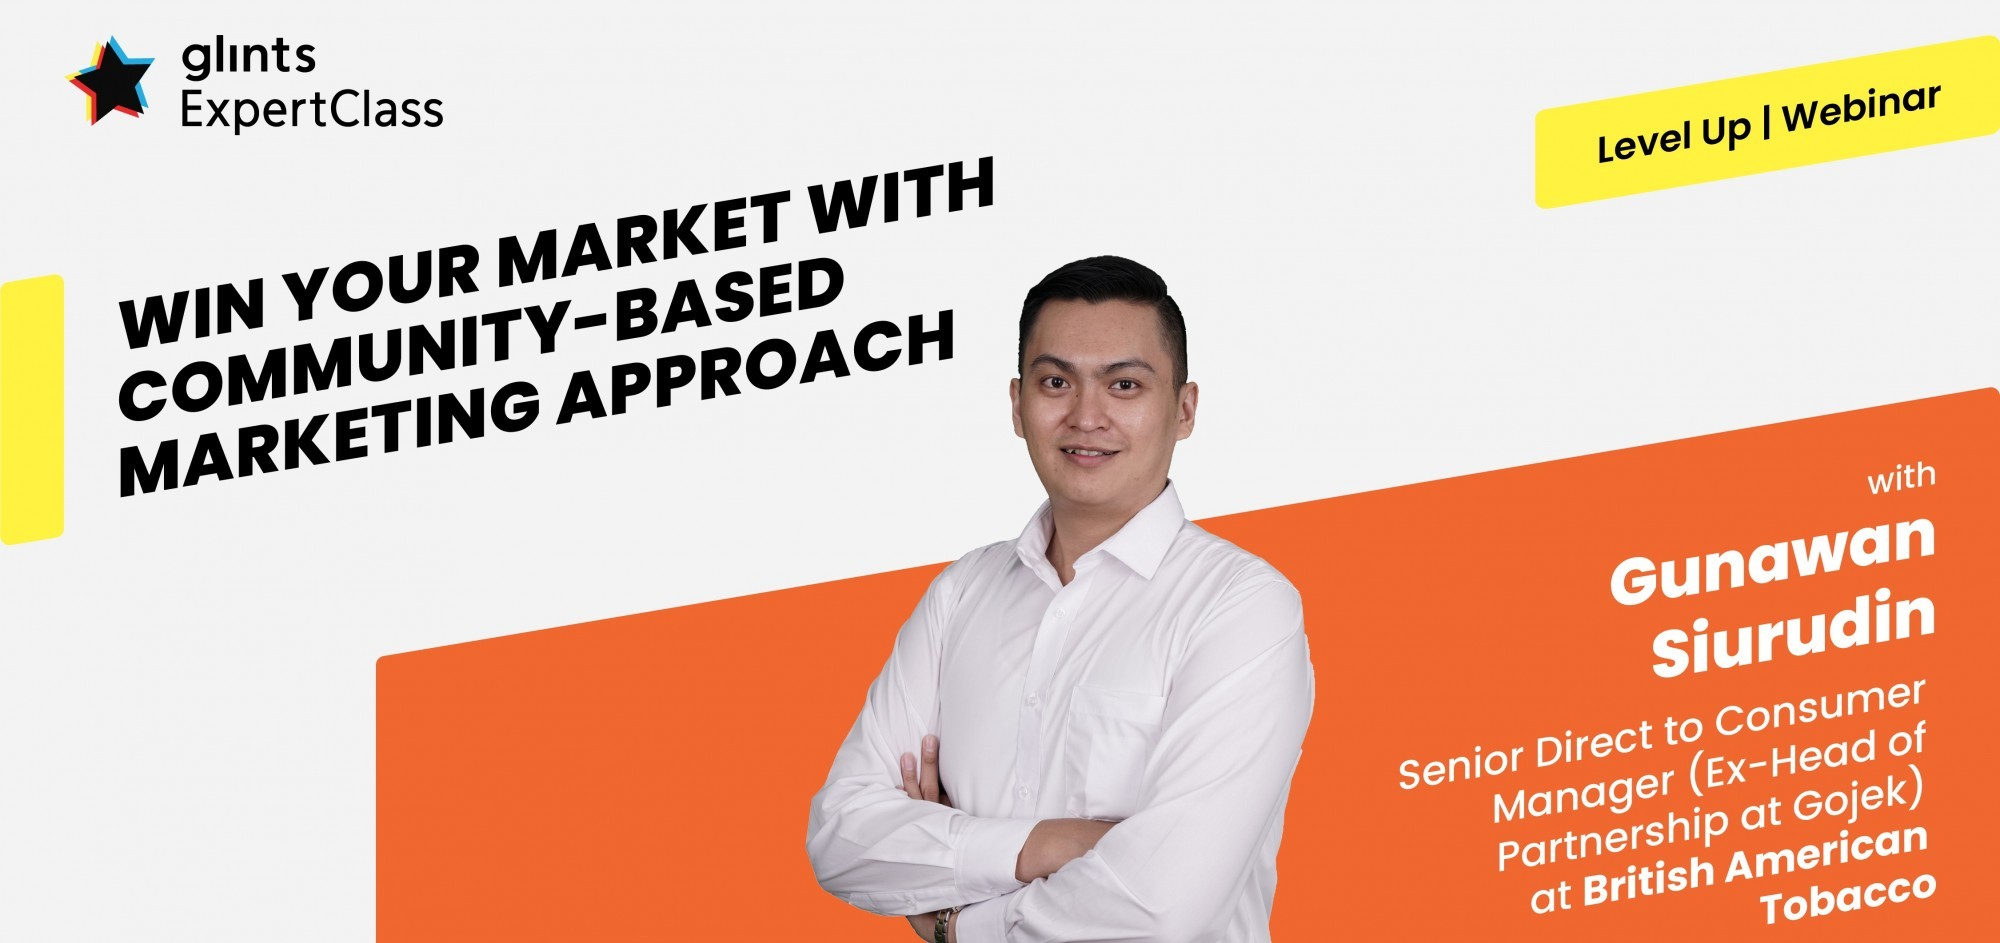 [Online Glints ExpertClass] Win Your Market With Community Based Marketing Approach